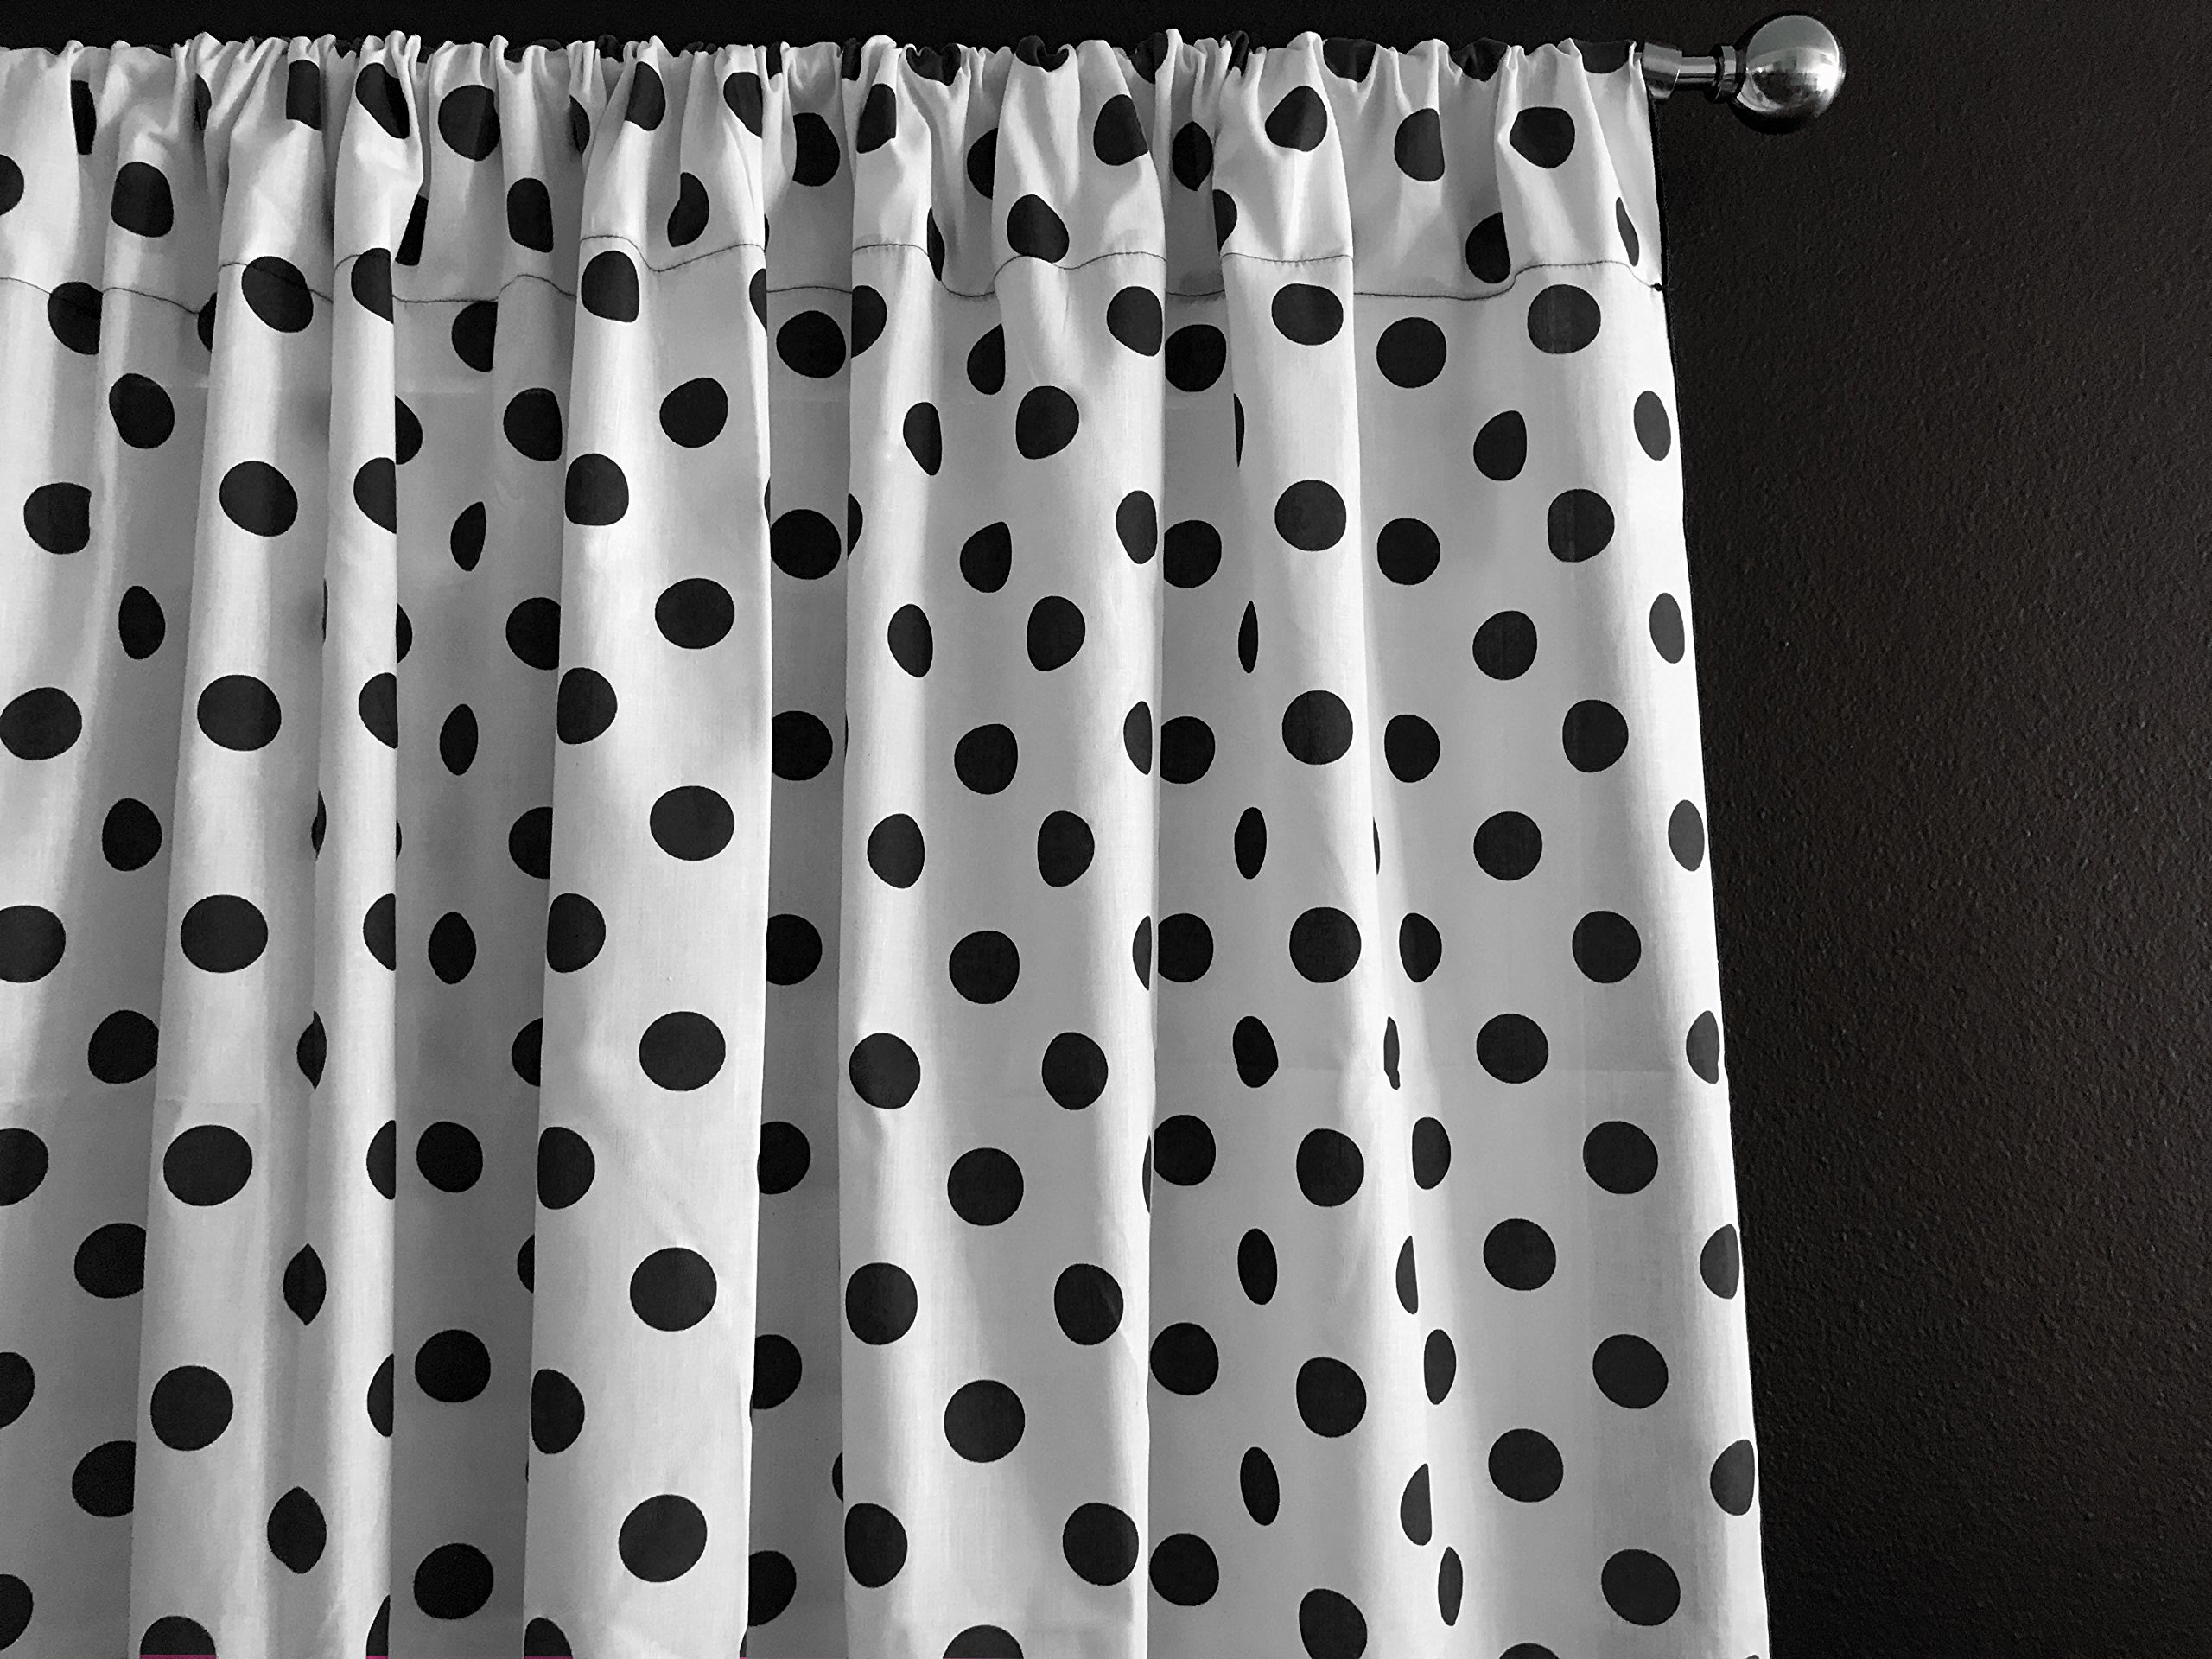 Zen Creative Designs Polka Dots on White Cotton Curtain Panel Perfect for Bed Room Window, Children's Room Window, Living Room Window Decor (Black Dots, 84'' Tall x 58'' Wide)